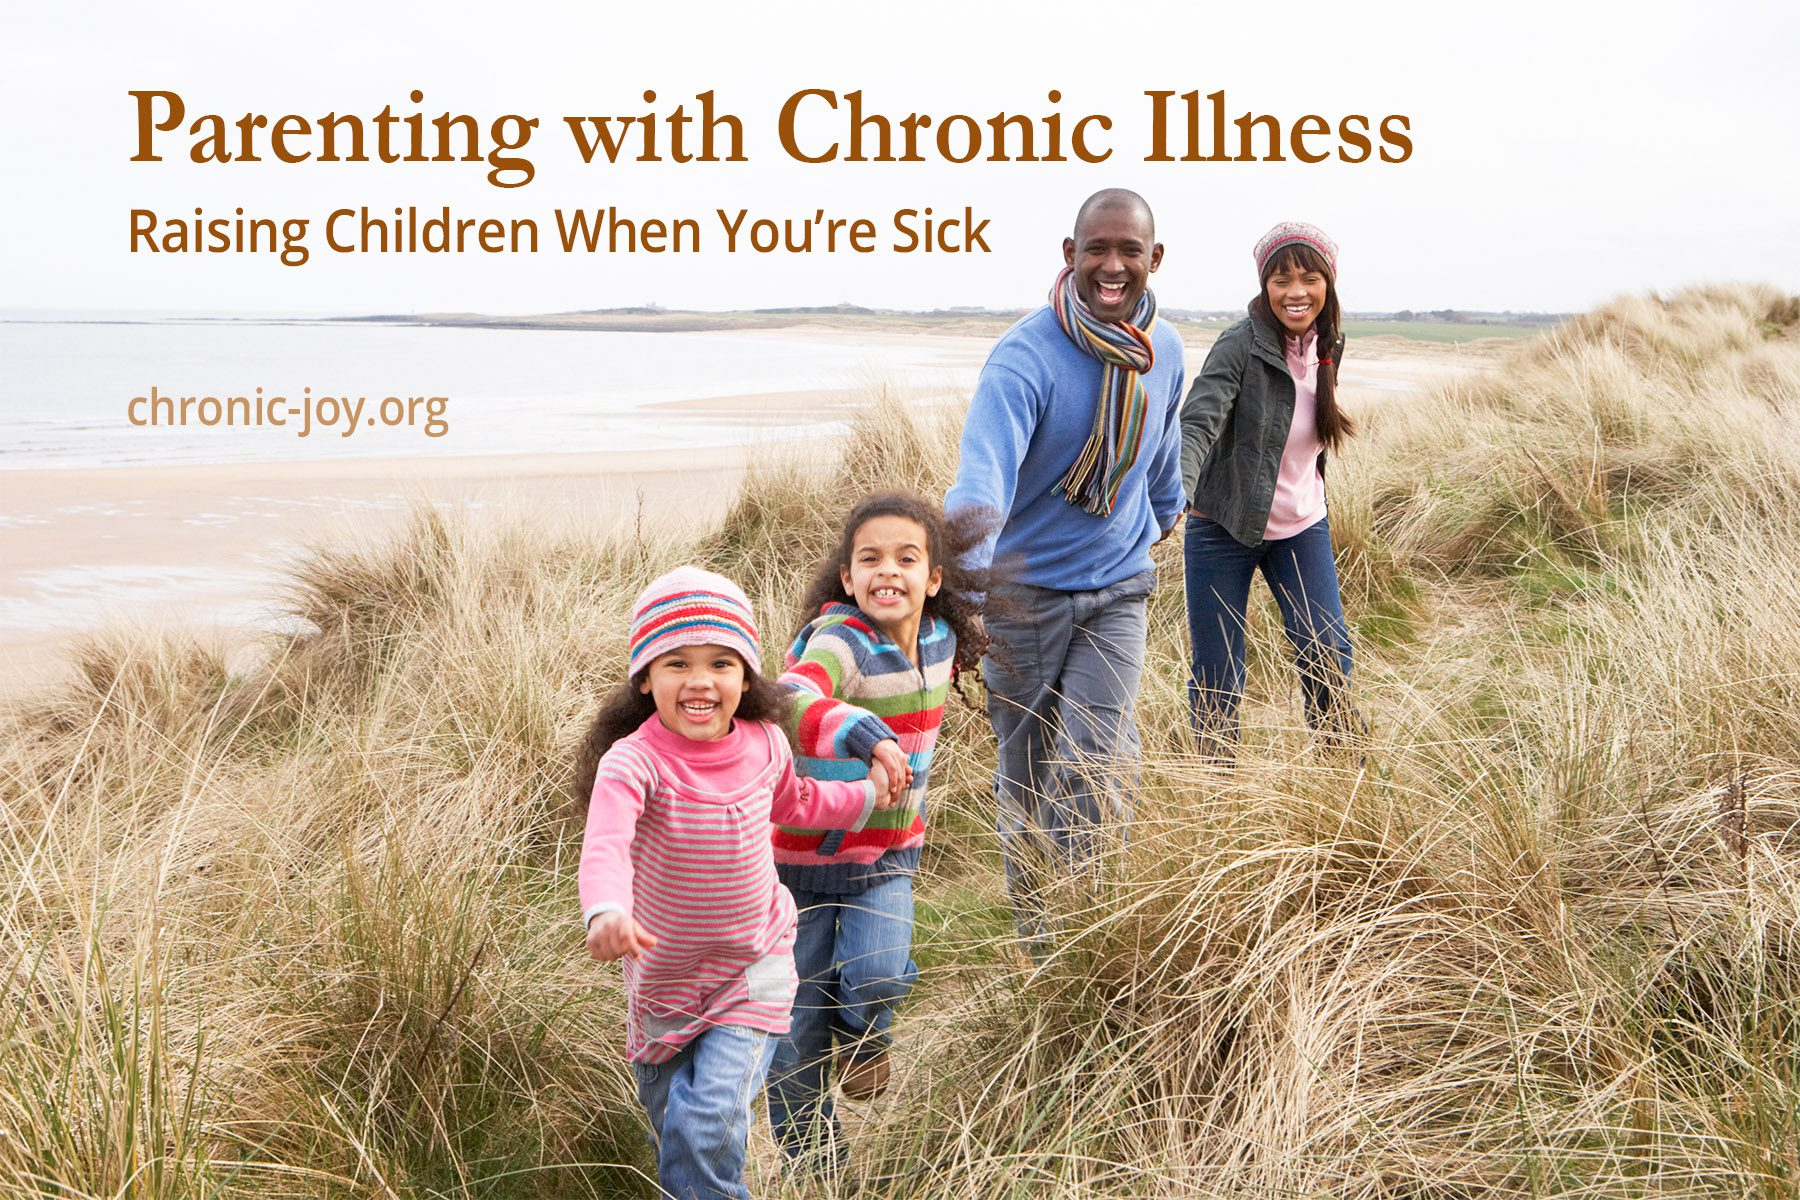 Parenting with Chronic Illness: Raising Children When You're Sick